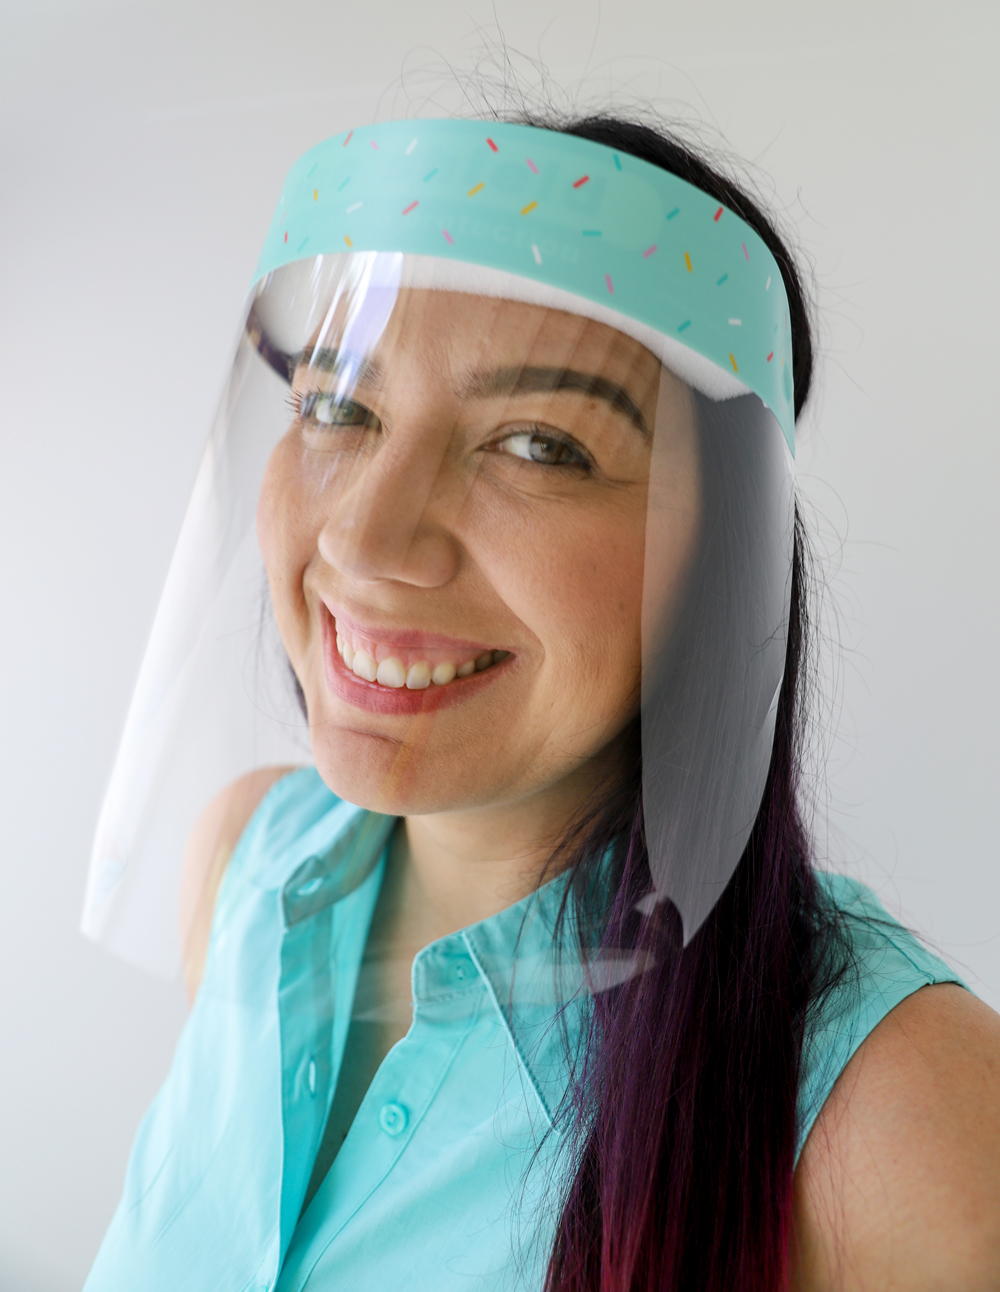 Sprinkles Plastic Face Shield protects your eyes, mouth, and nose with style and fun